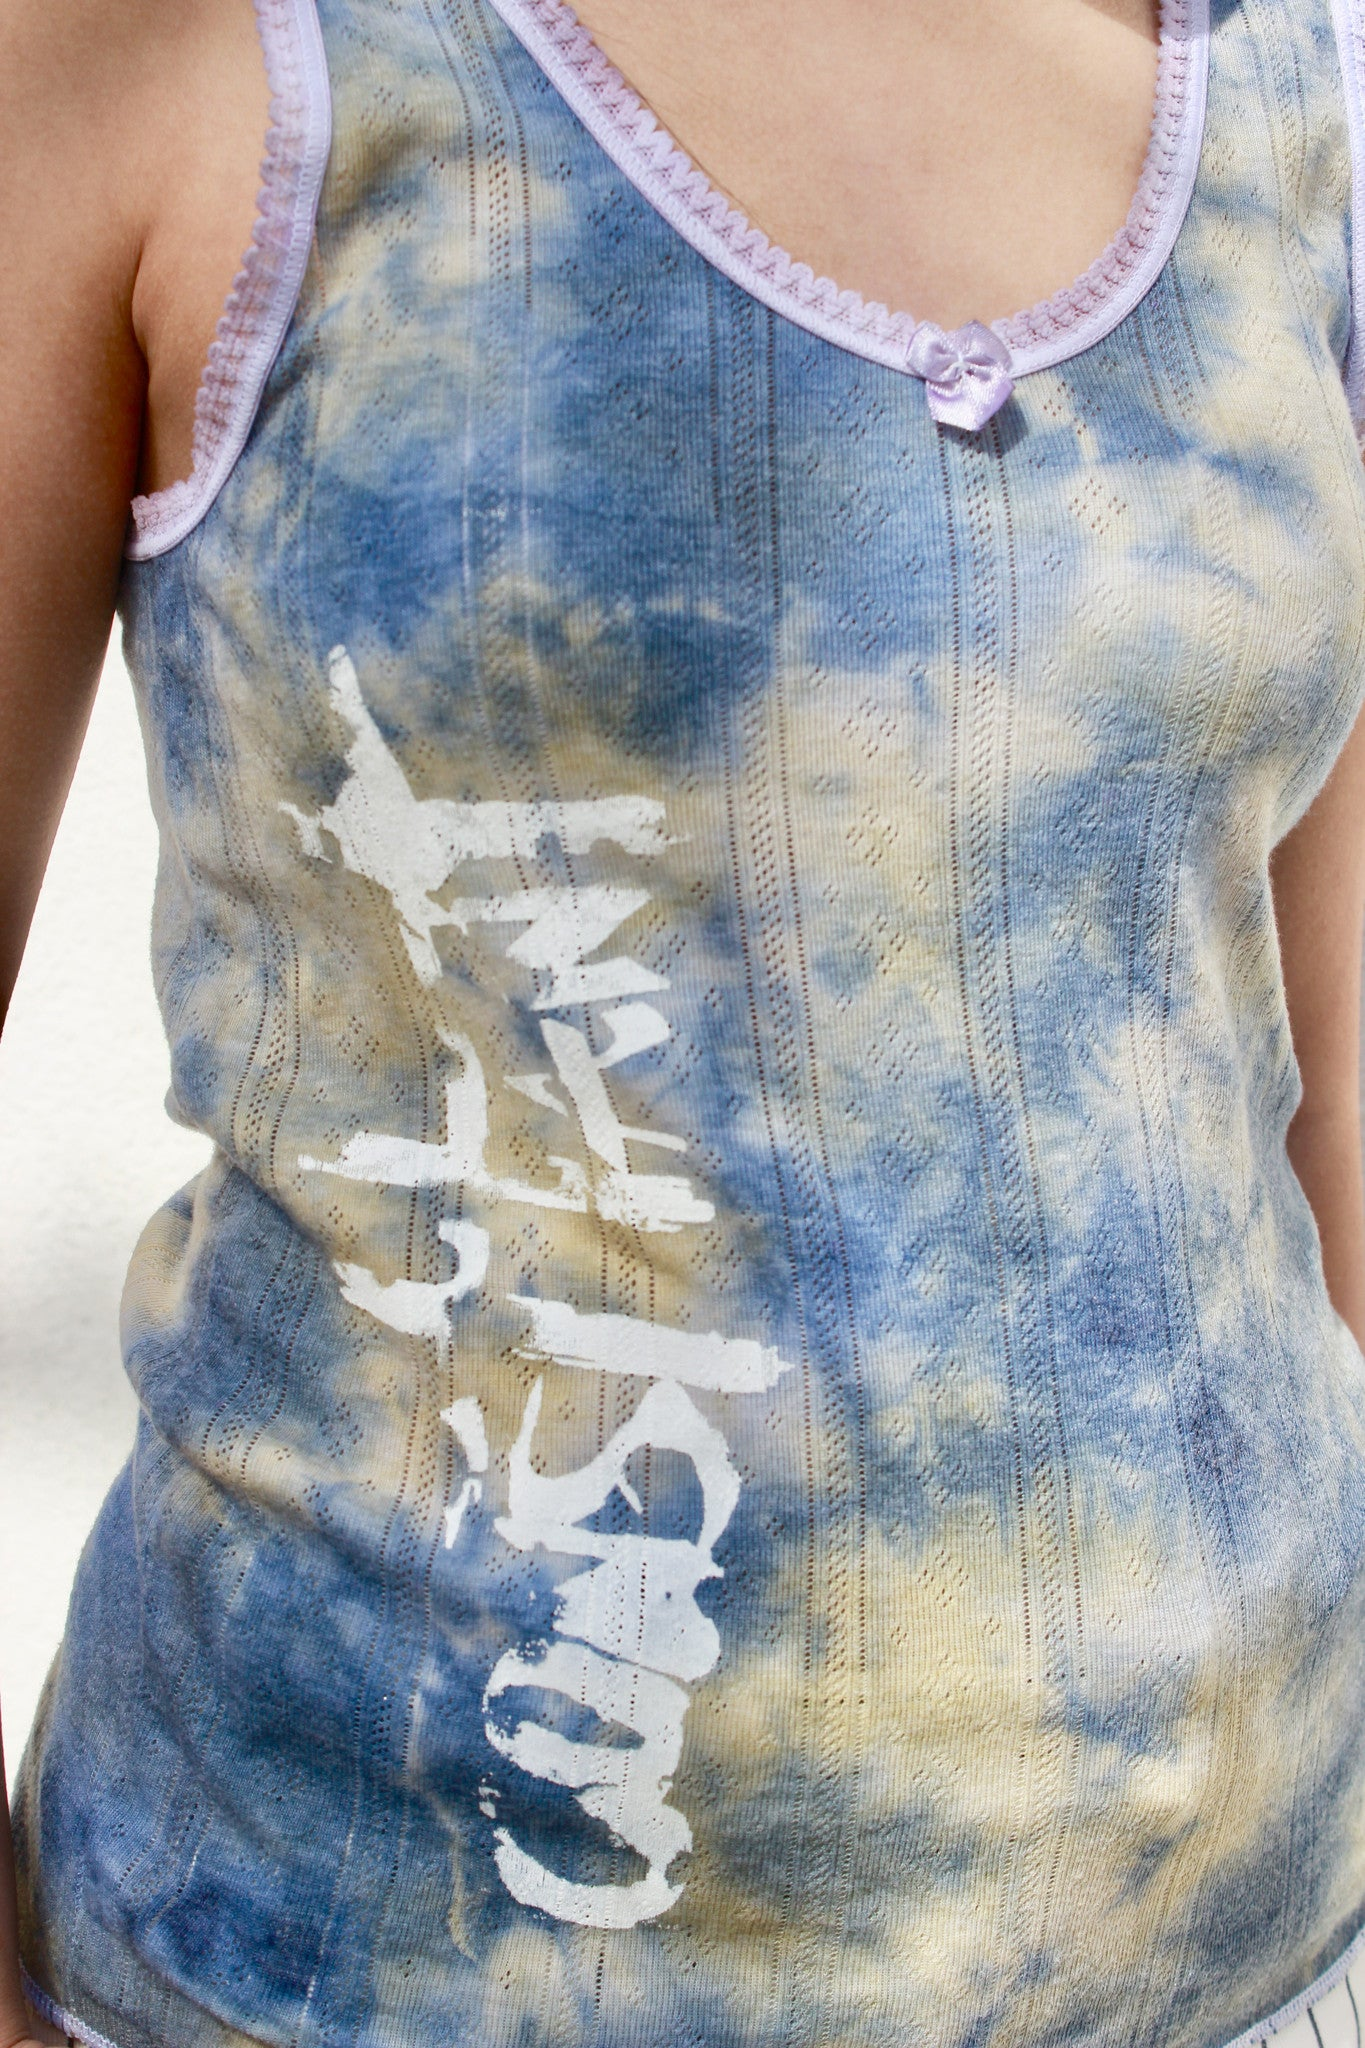 women's tye dye tank top with hand printed design